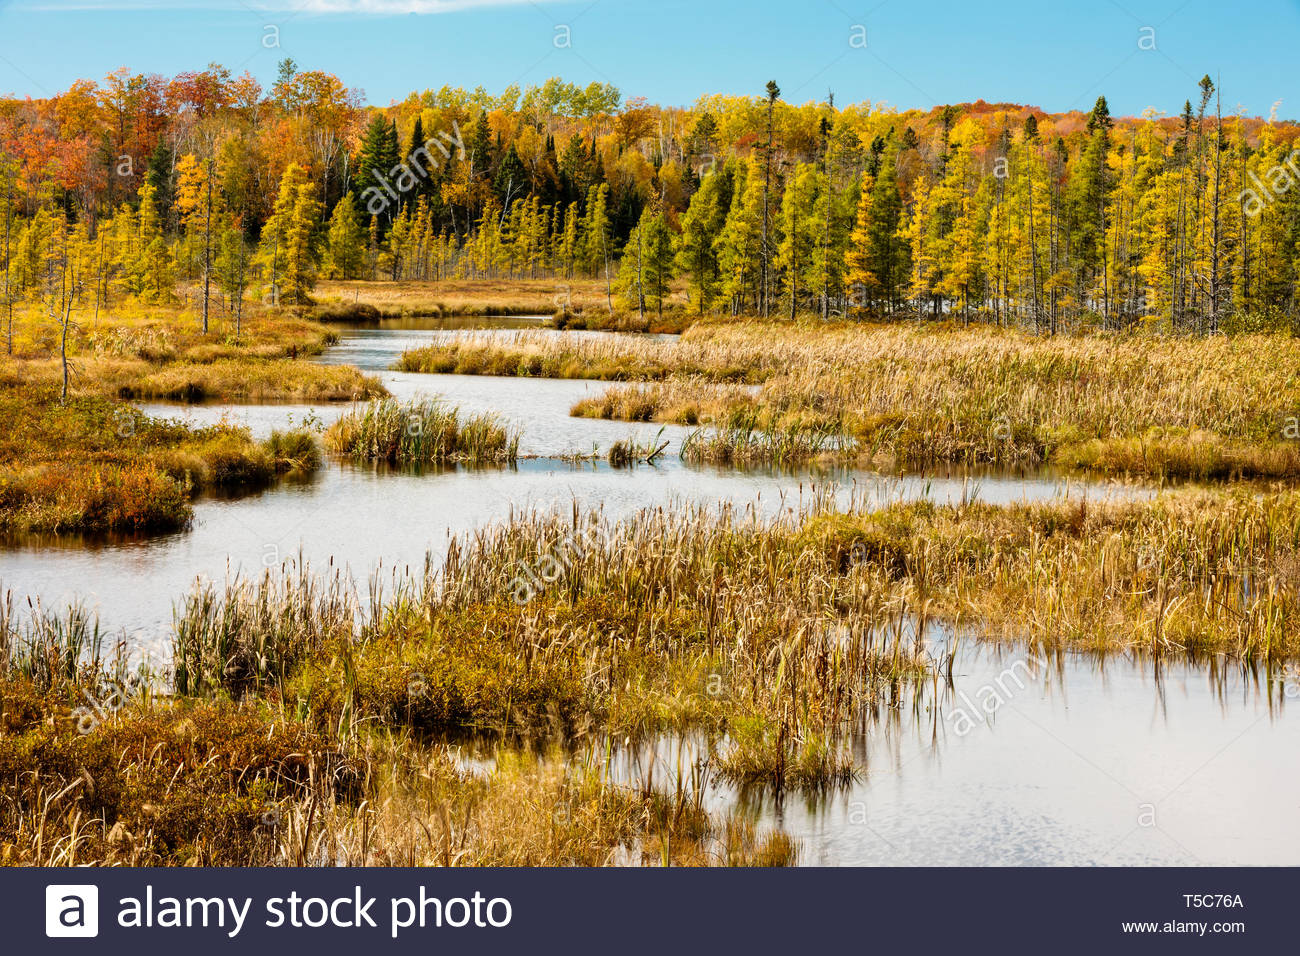 Land O Lakes Stock Photos & Land O Lakes Stock Images - Alamy